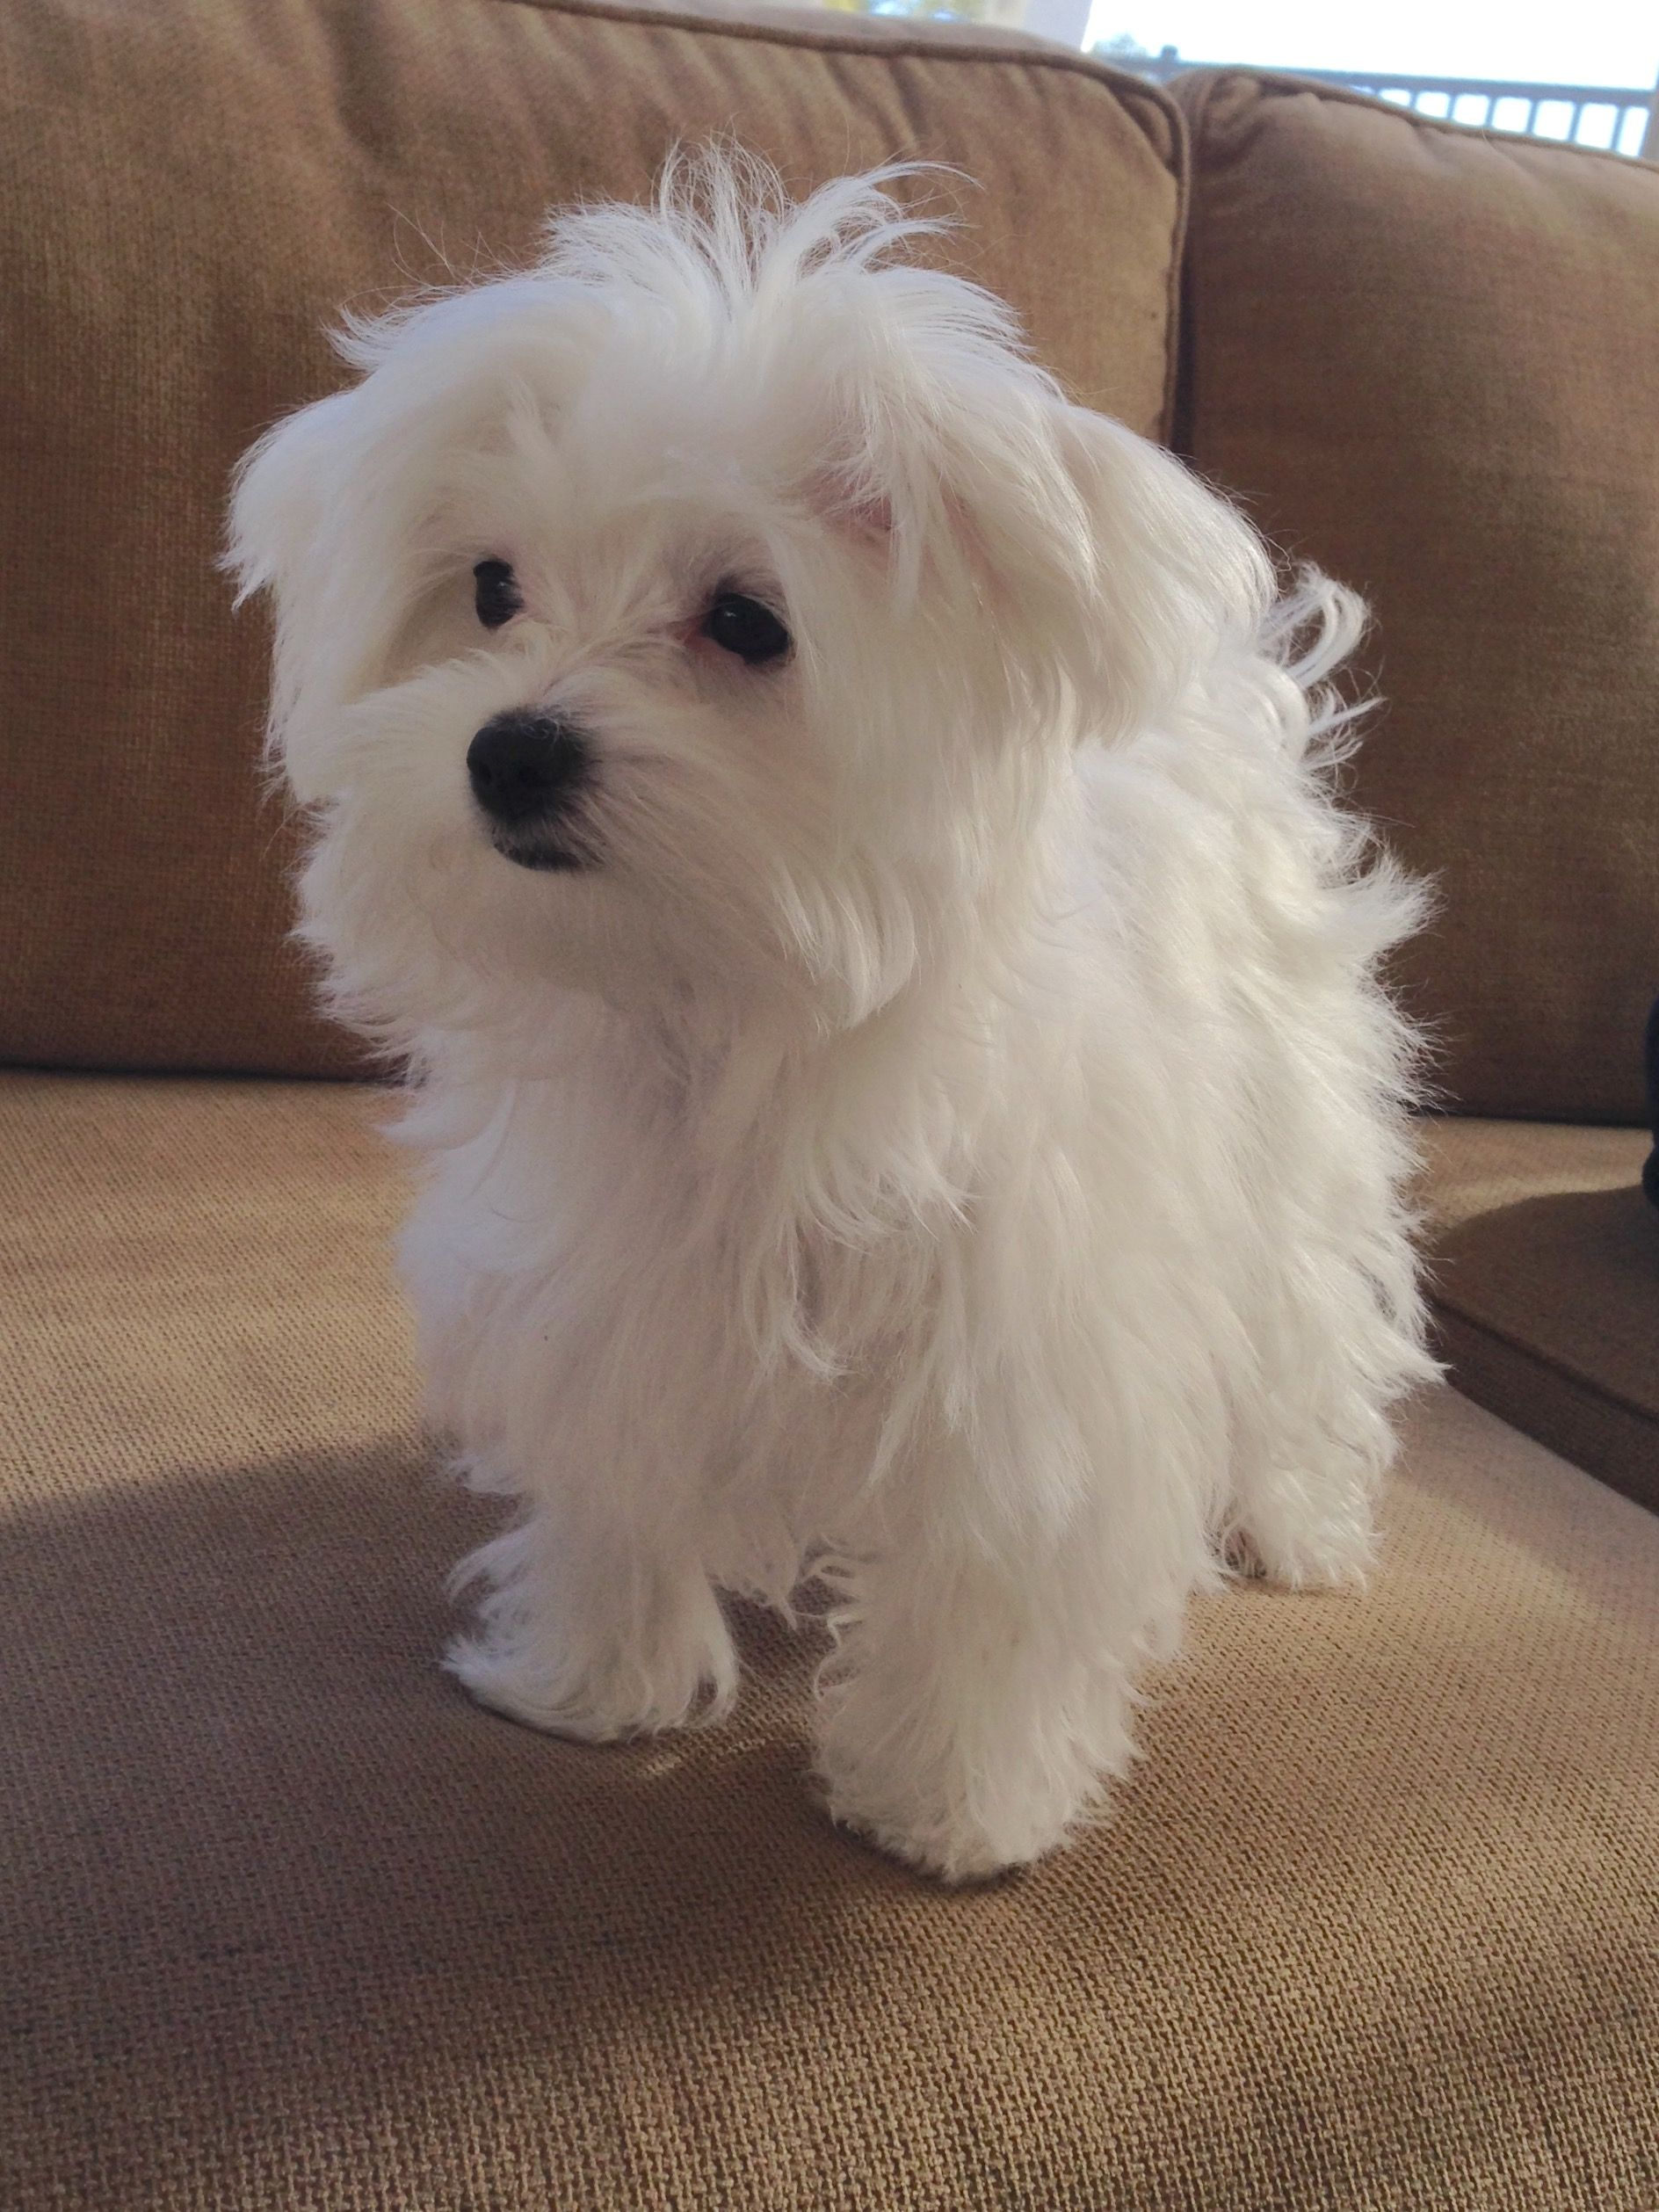 Maltese Coconut At 5 Months Maltese Puppy Puppies Cute Dogs